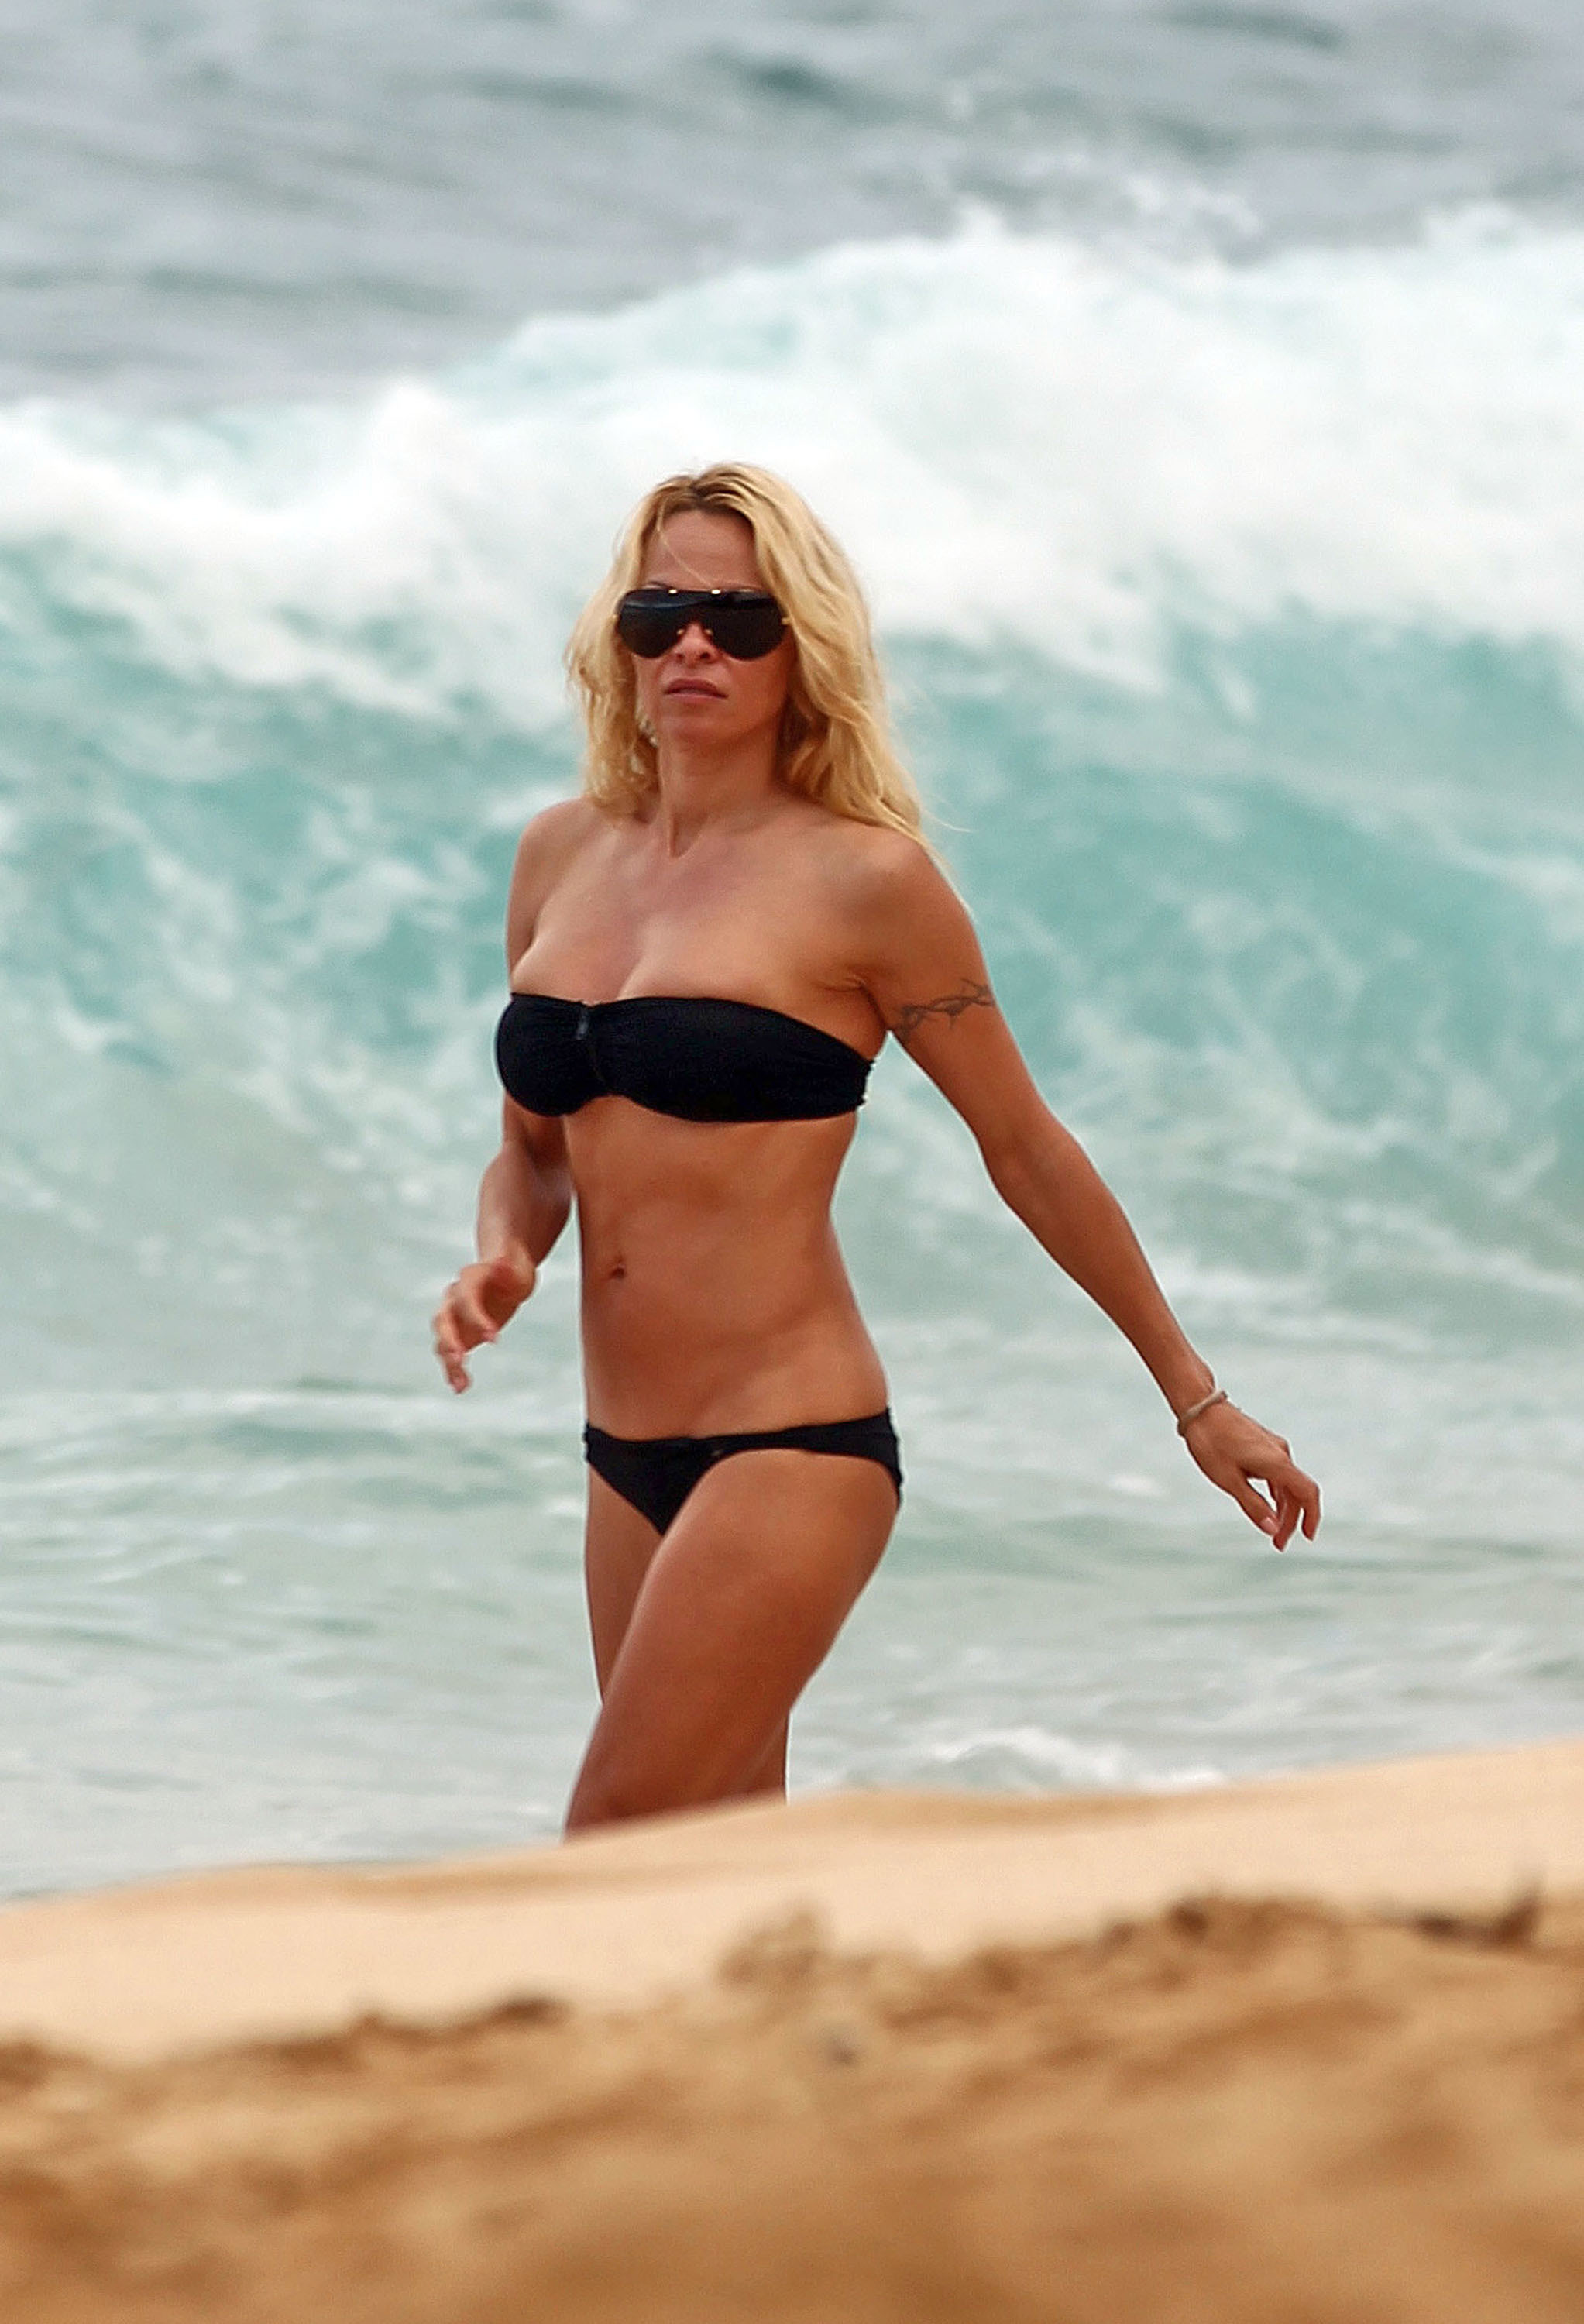 pamela anderson bikini boobs vacation holiday beach